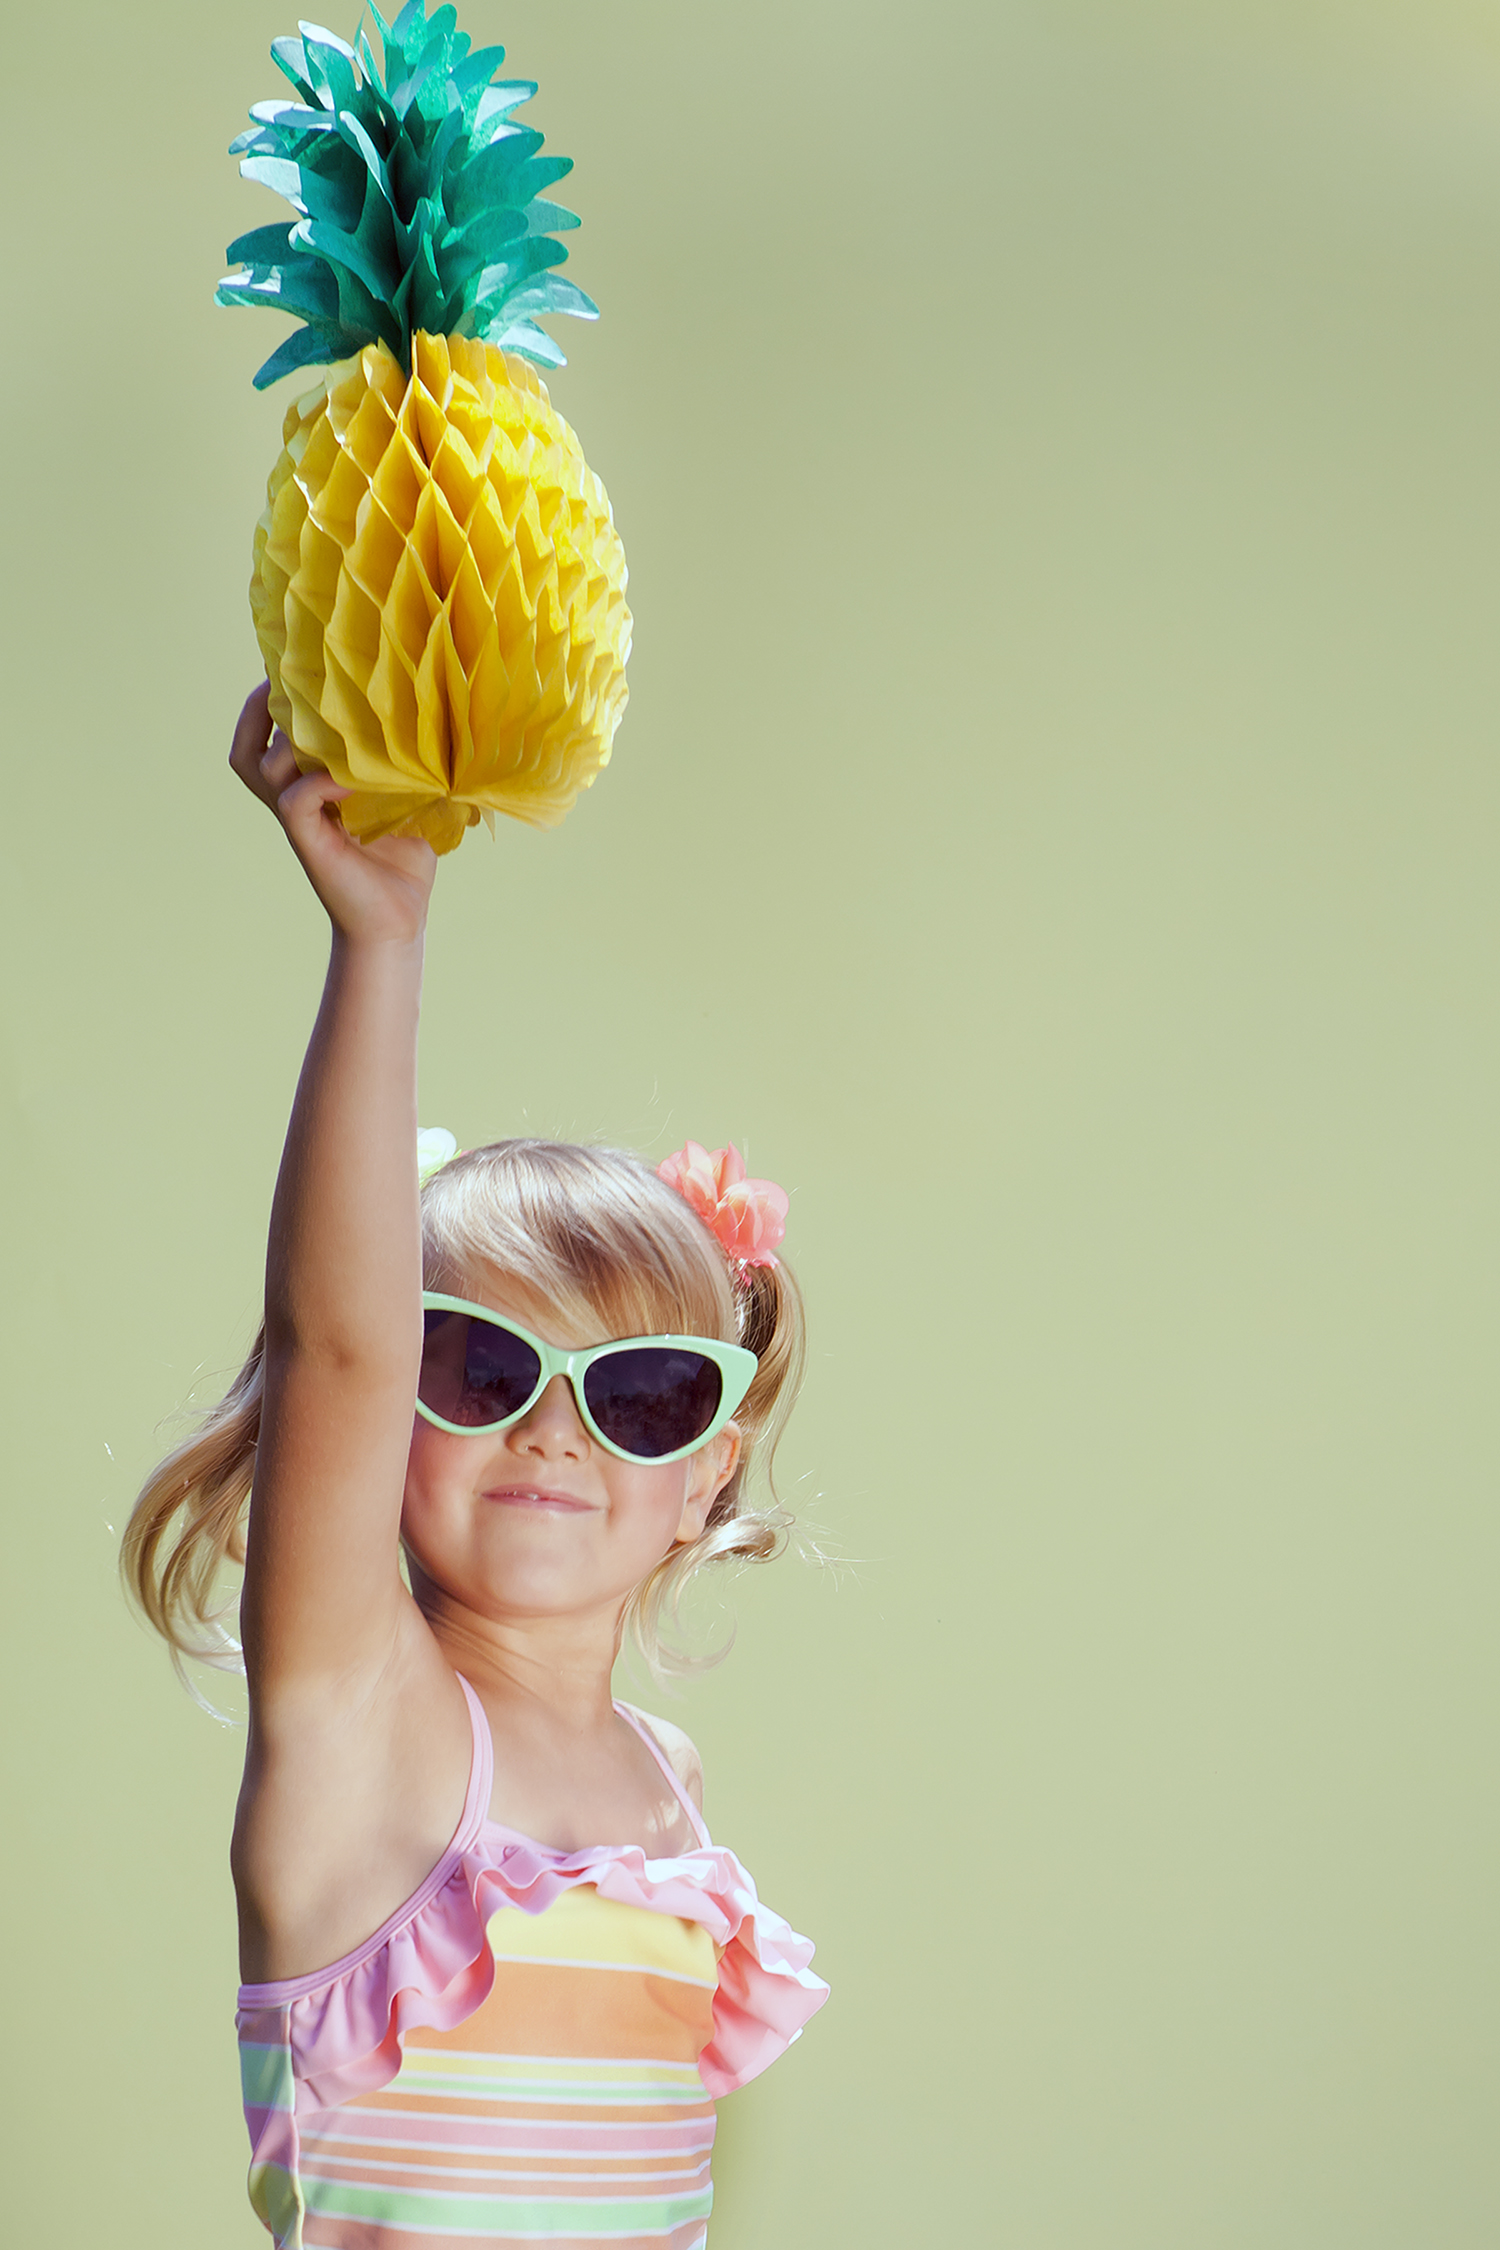 lifestyle-editorial-children-washington-dc-malek-naz-photography-contempo-kids-fashion-summer-pineapple.jpg